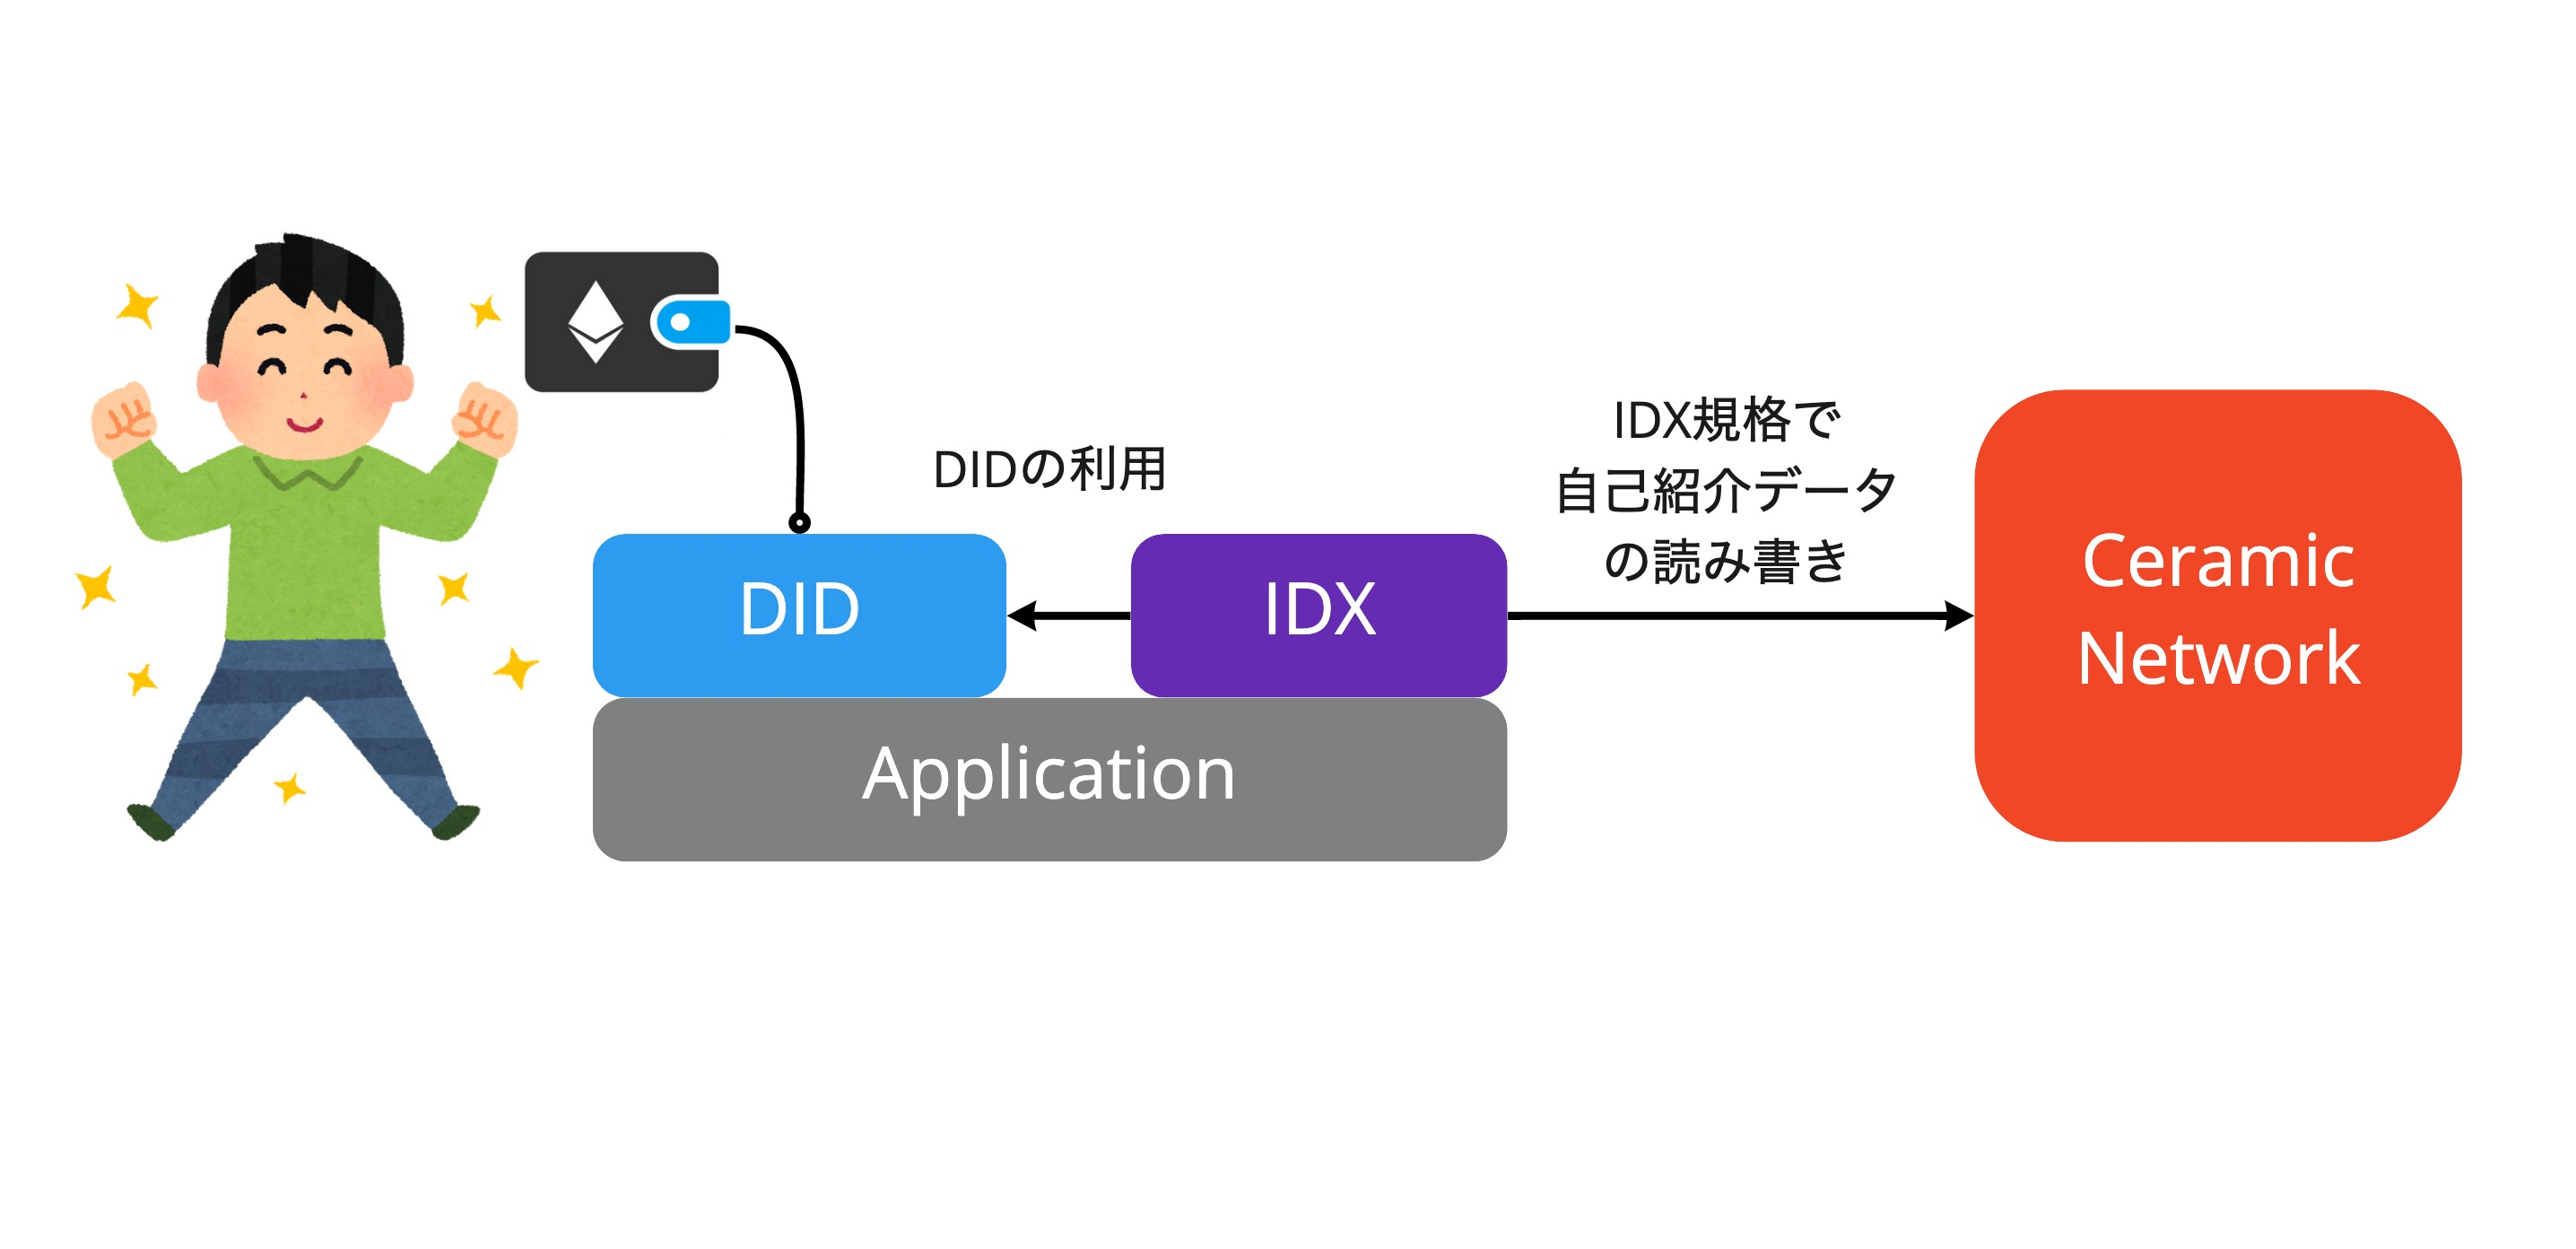 https://raw.githubusercontent.com/winor30/ceramic-idx-application-example/main/resources/example-app-overview.jpg